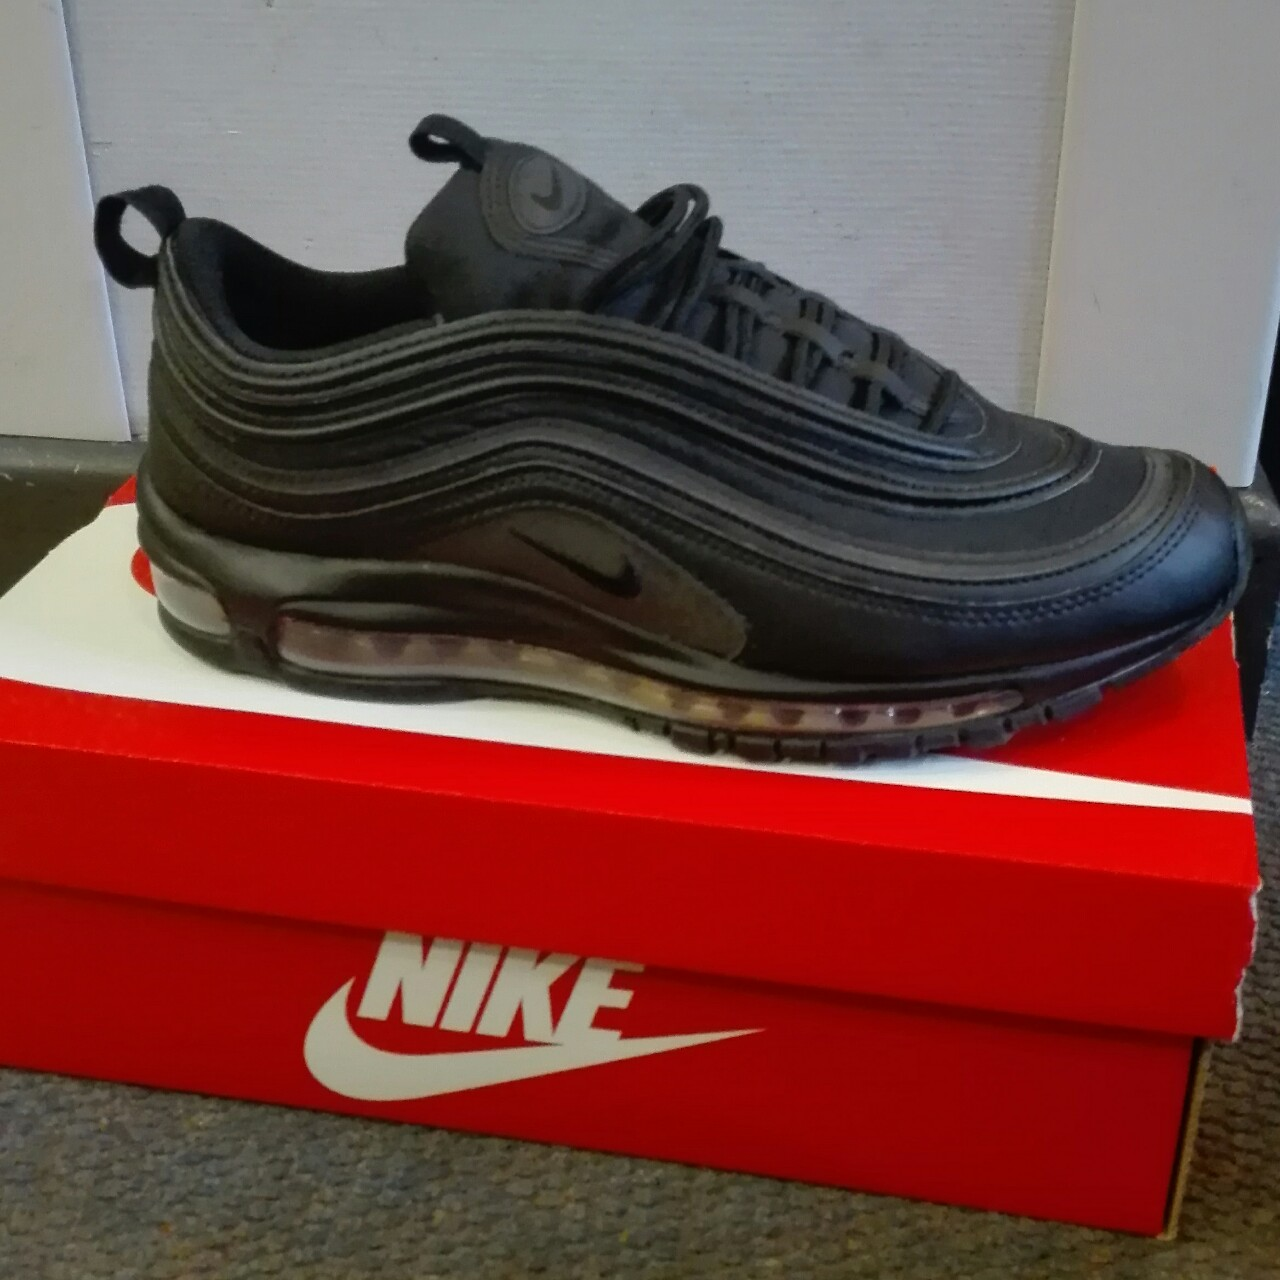 Nike Air Max 97 PRM SE BlackGold reflective black Depop